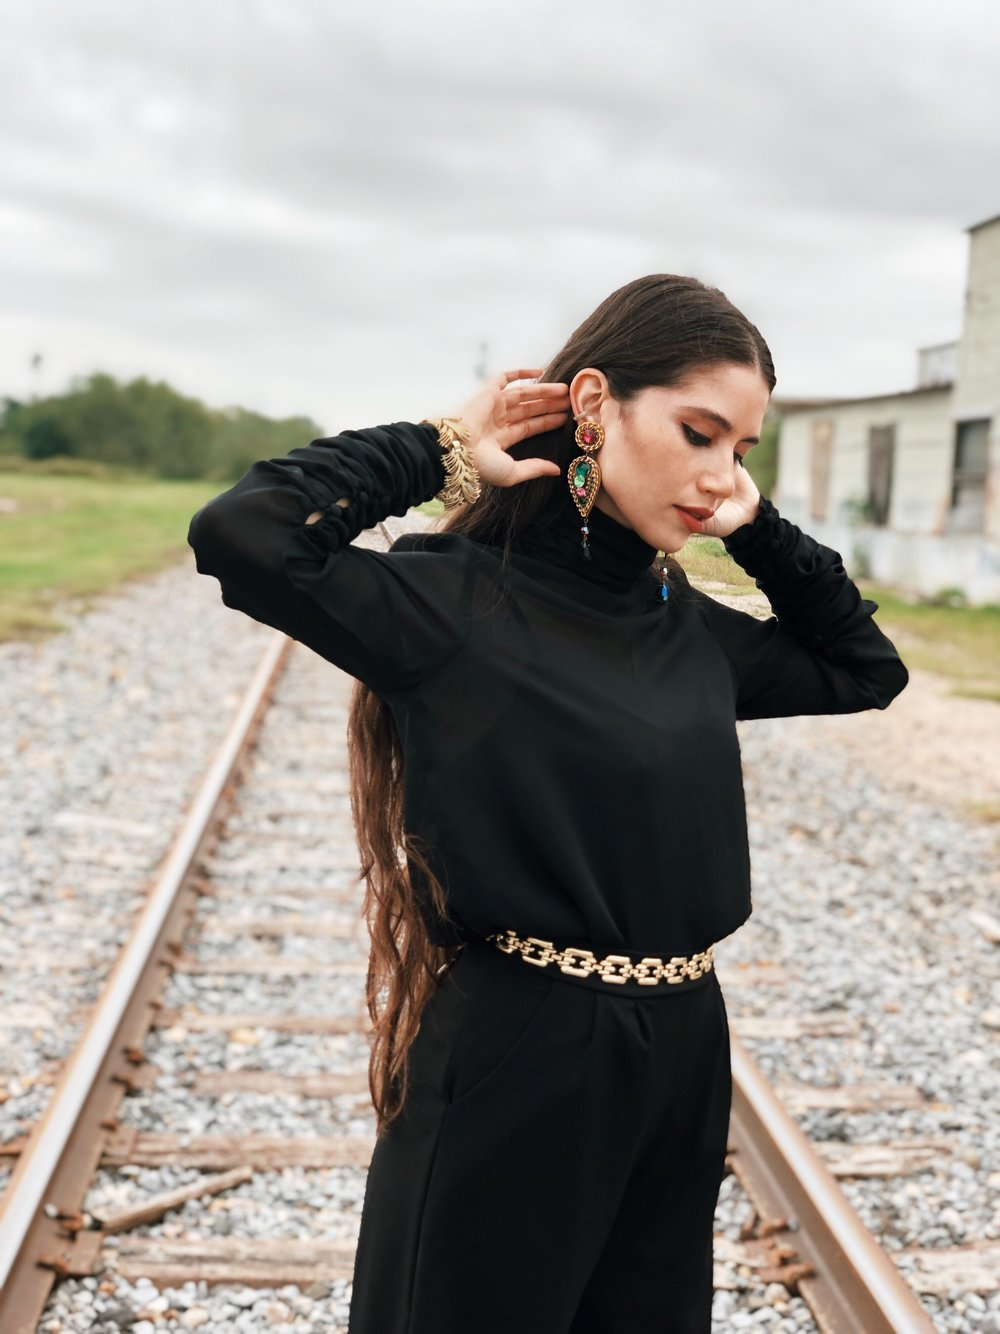 Black and gold outfit - A Week Of Cruelty-Free Outfits & Vegan Beauty With Jessica Salazar From All There August on The Good Trade